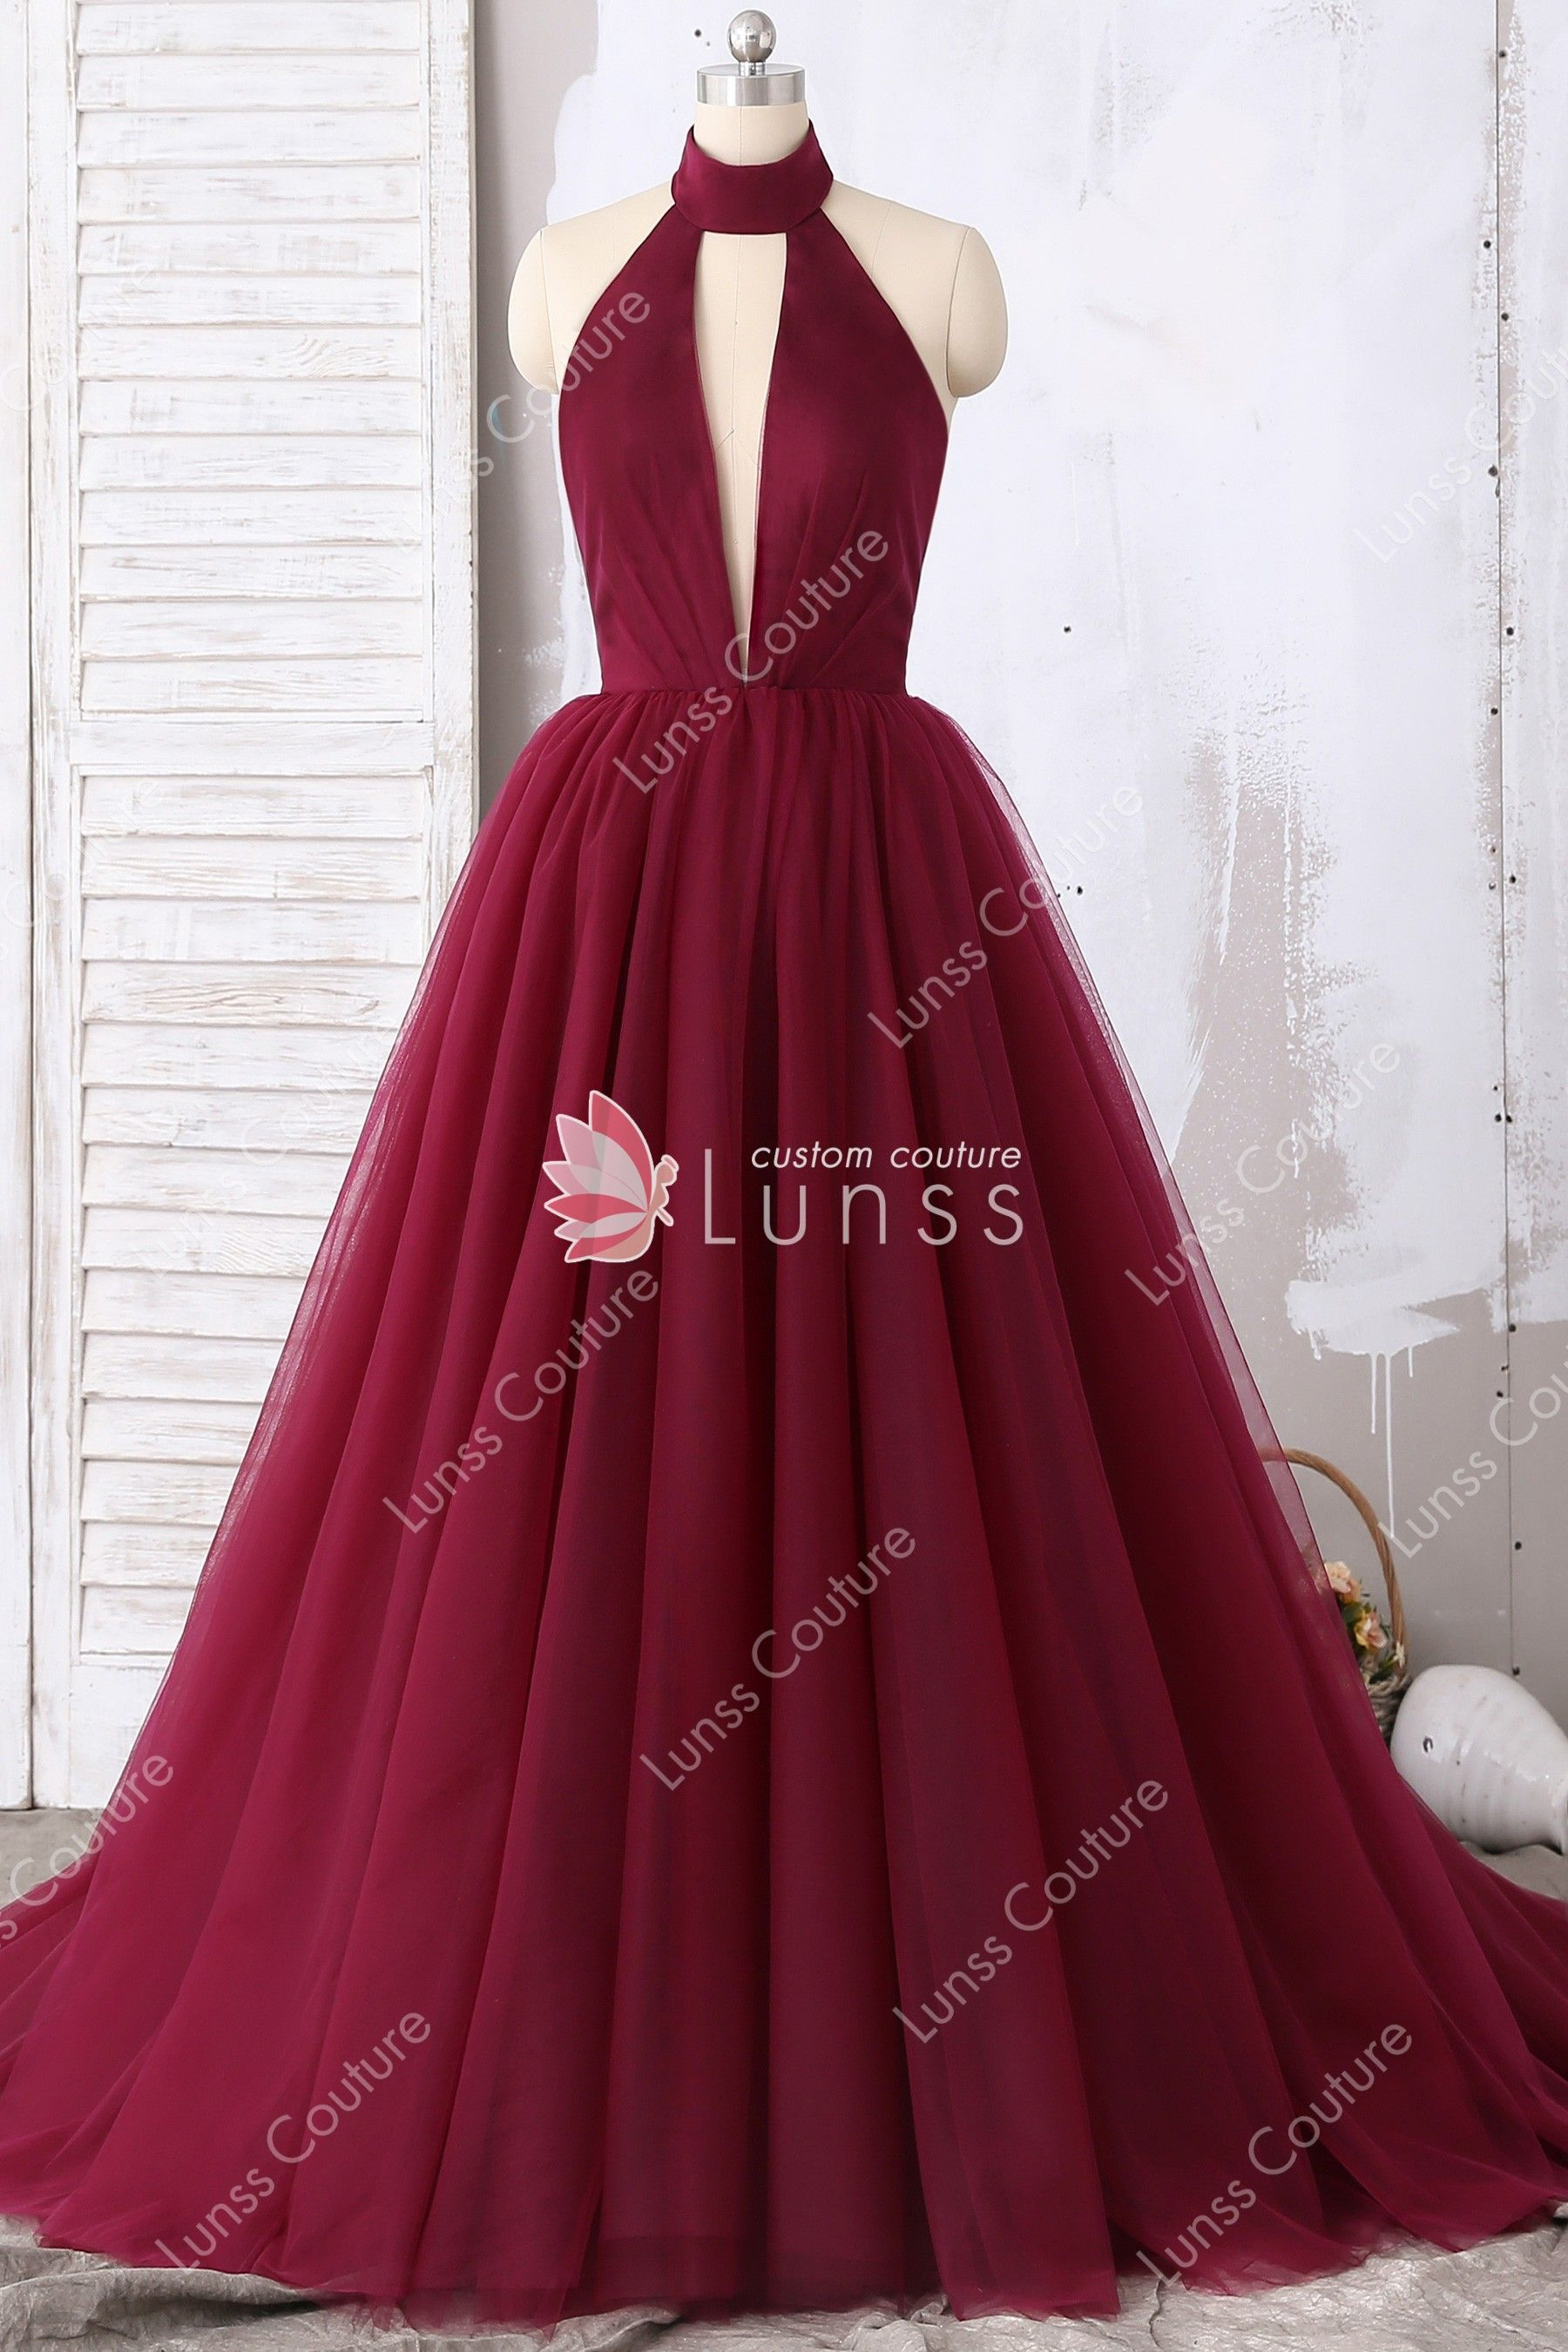 f1bb78cb9ab This queen style dark wine tulle puffy prom dress features timeless ball  gown silhouette